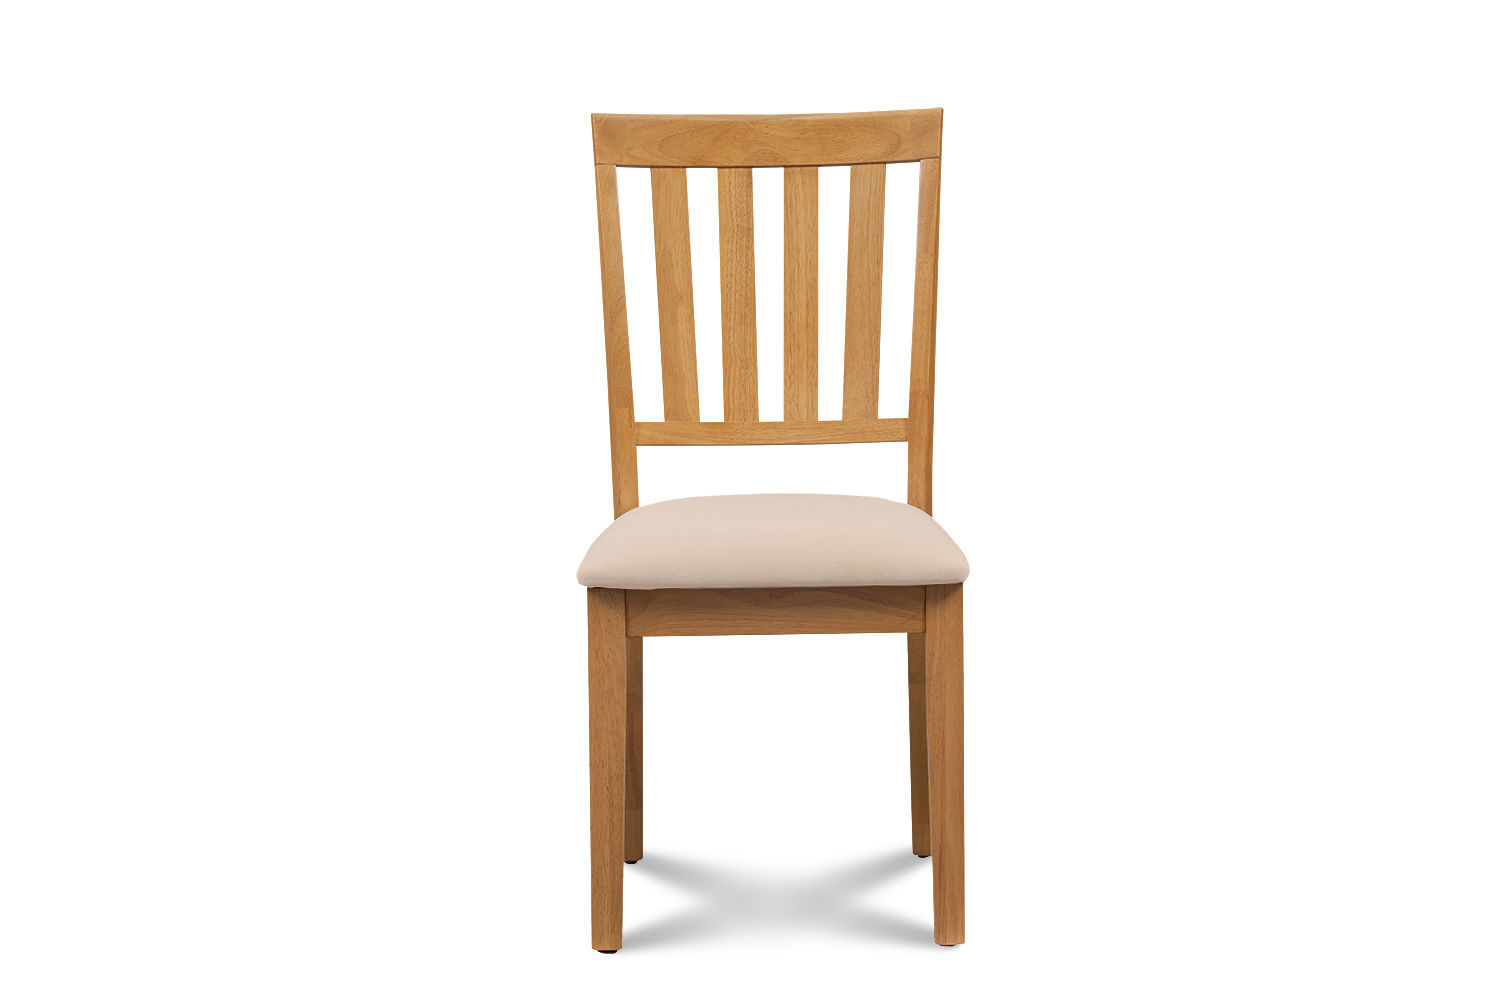 SET OF 2 MOCHA KITCHEN DINING CHAIRS WITH SOFT-PADDED SEAT IN OAK FINISH